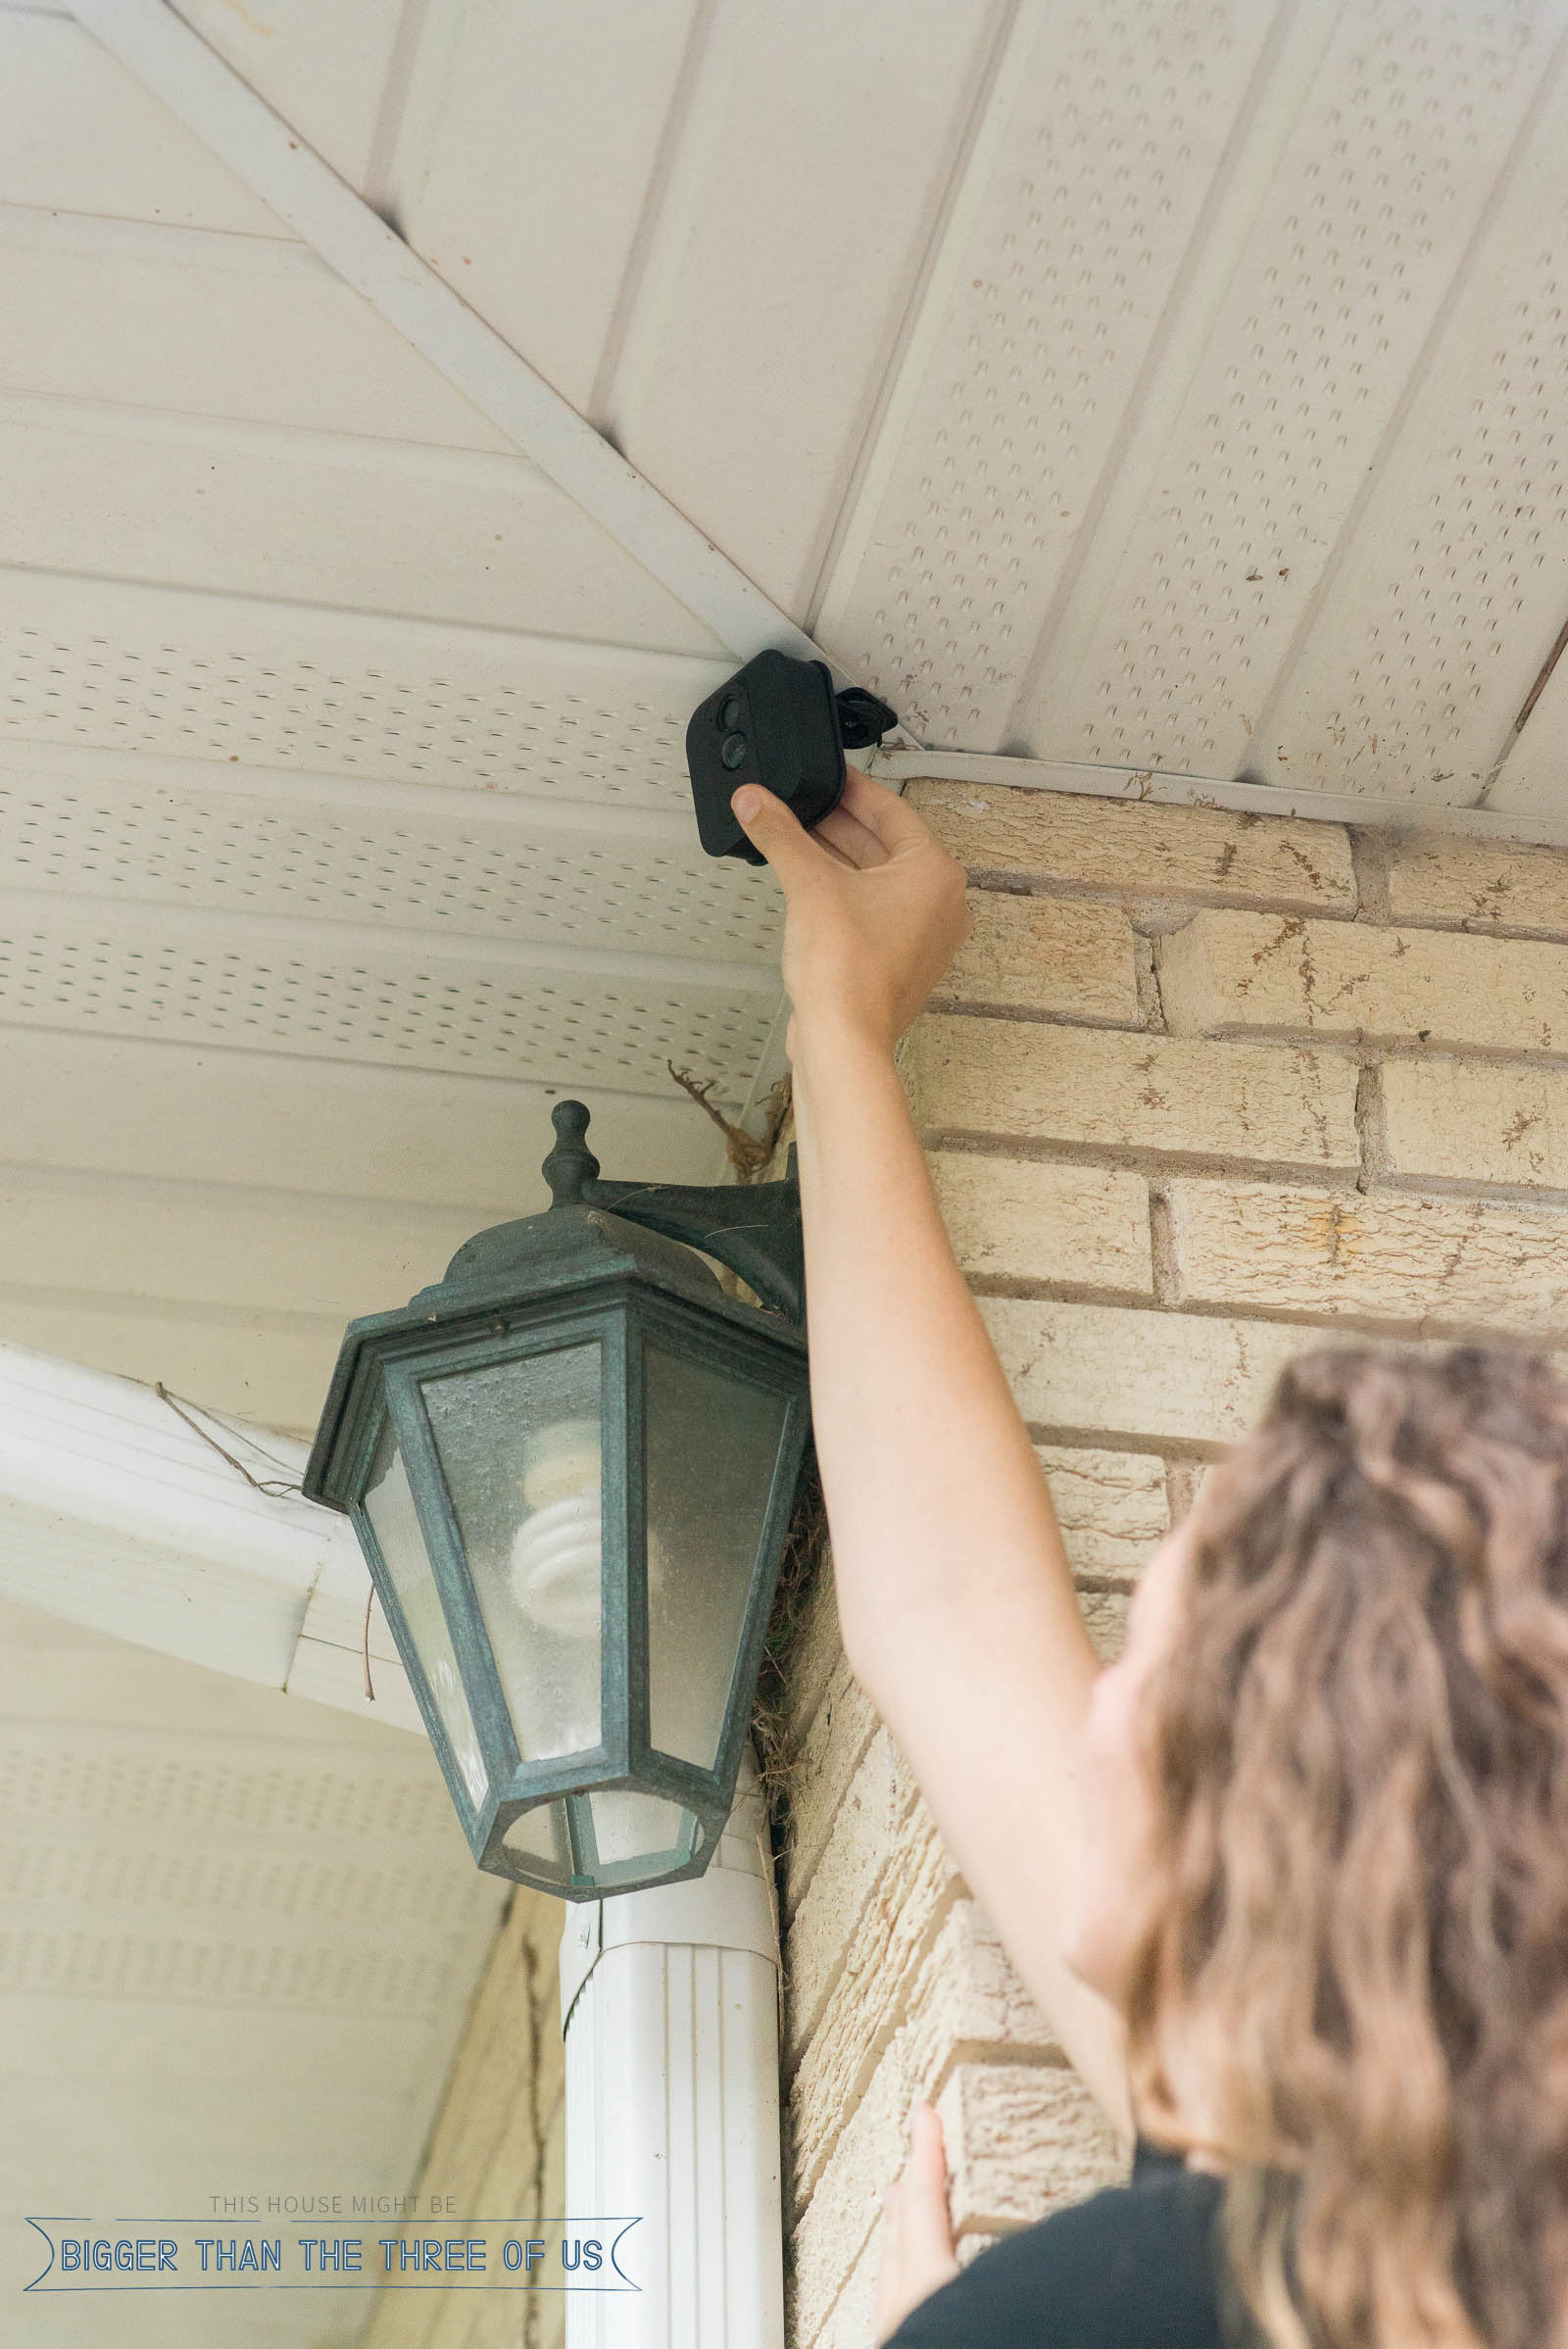 If you want exterior home security, but aren't sure where to start... read this post all about Blink Home Security. #homesafety #secruitycamera